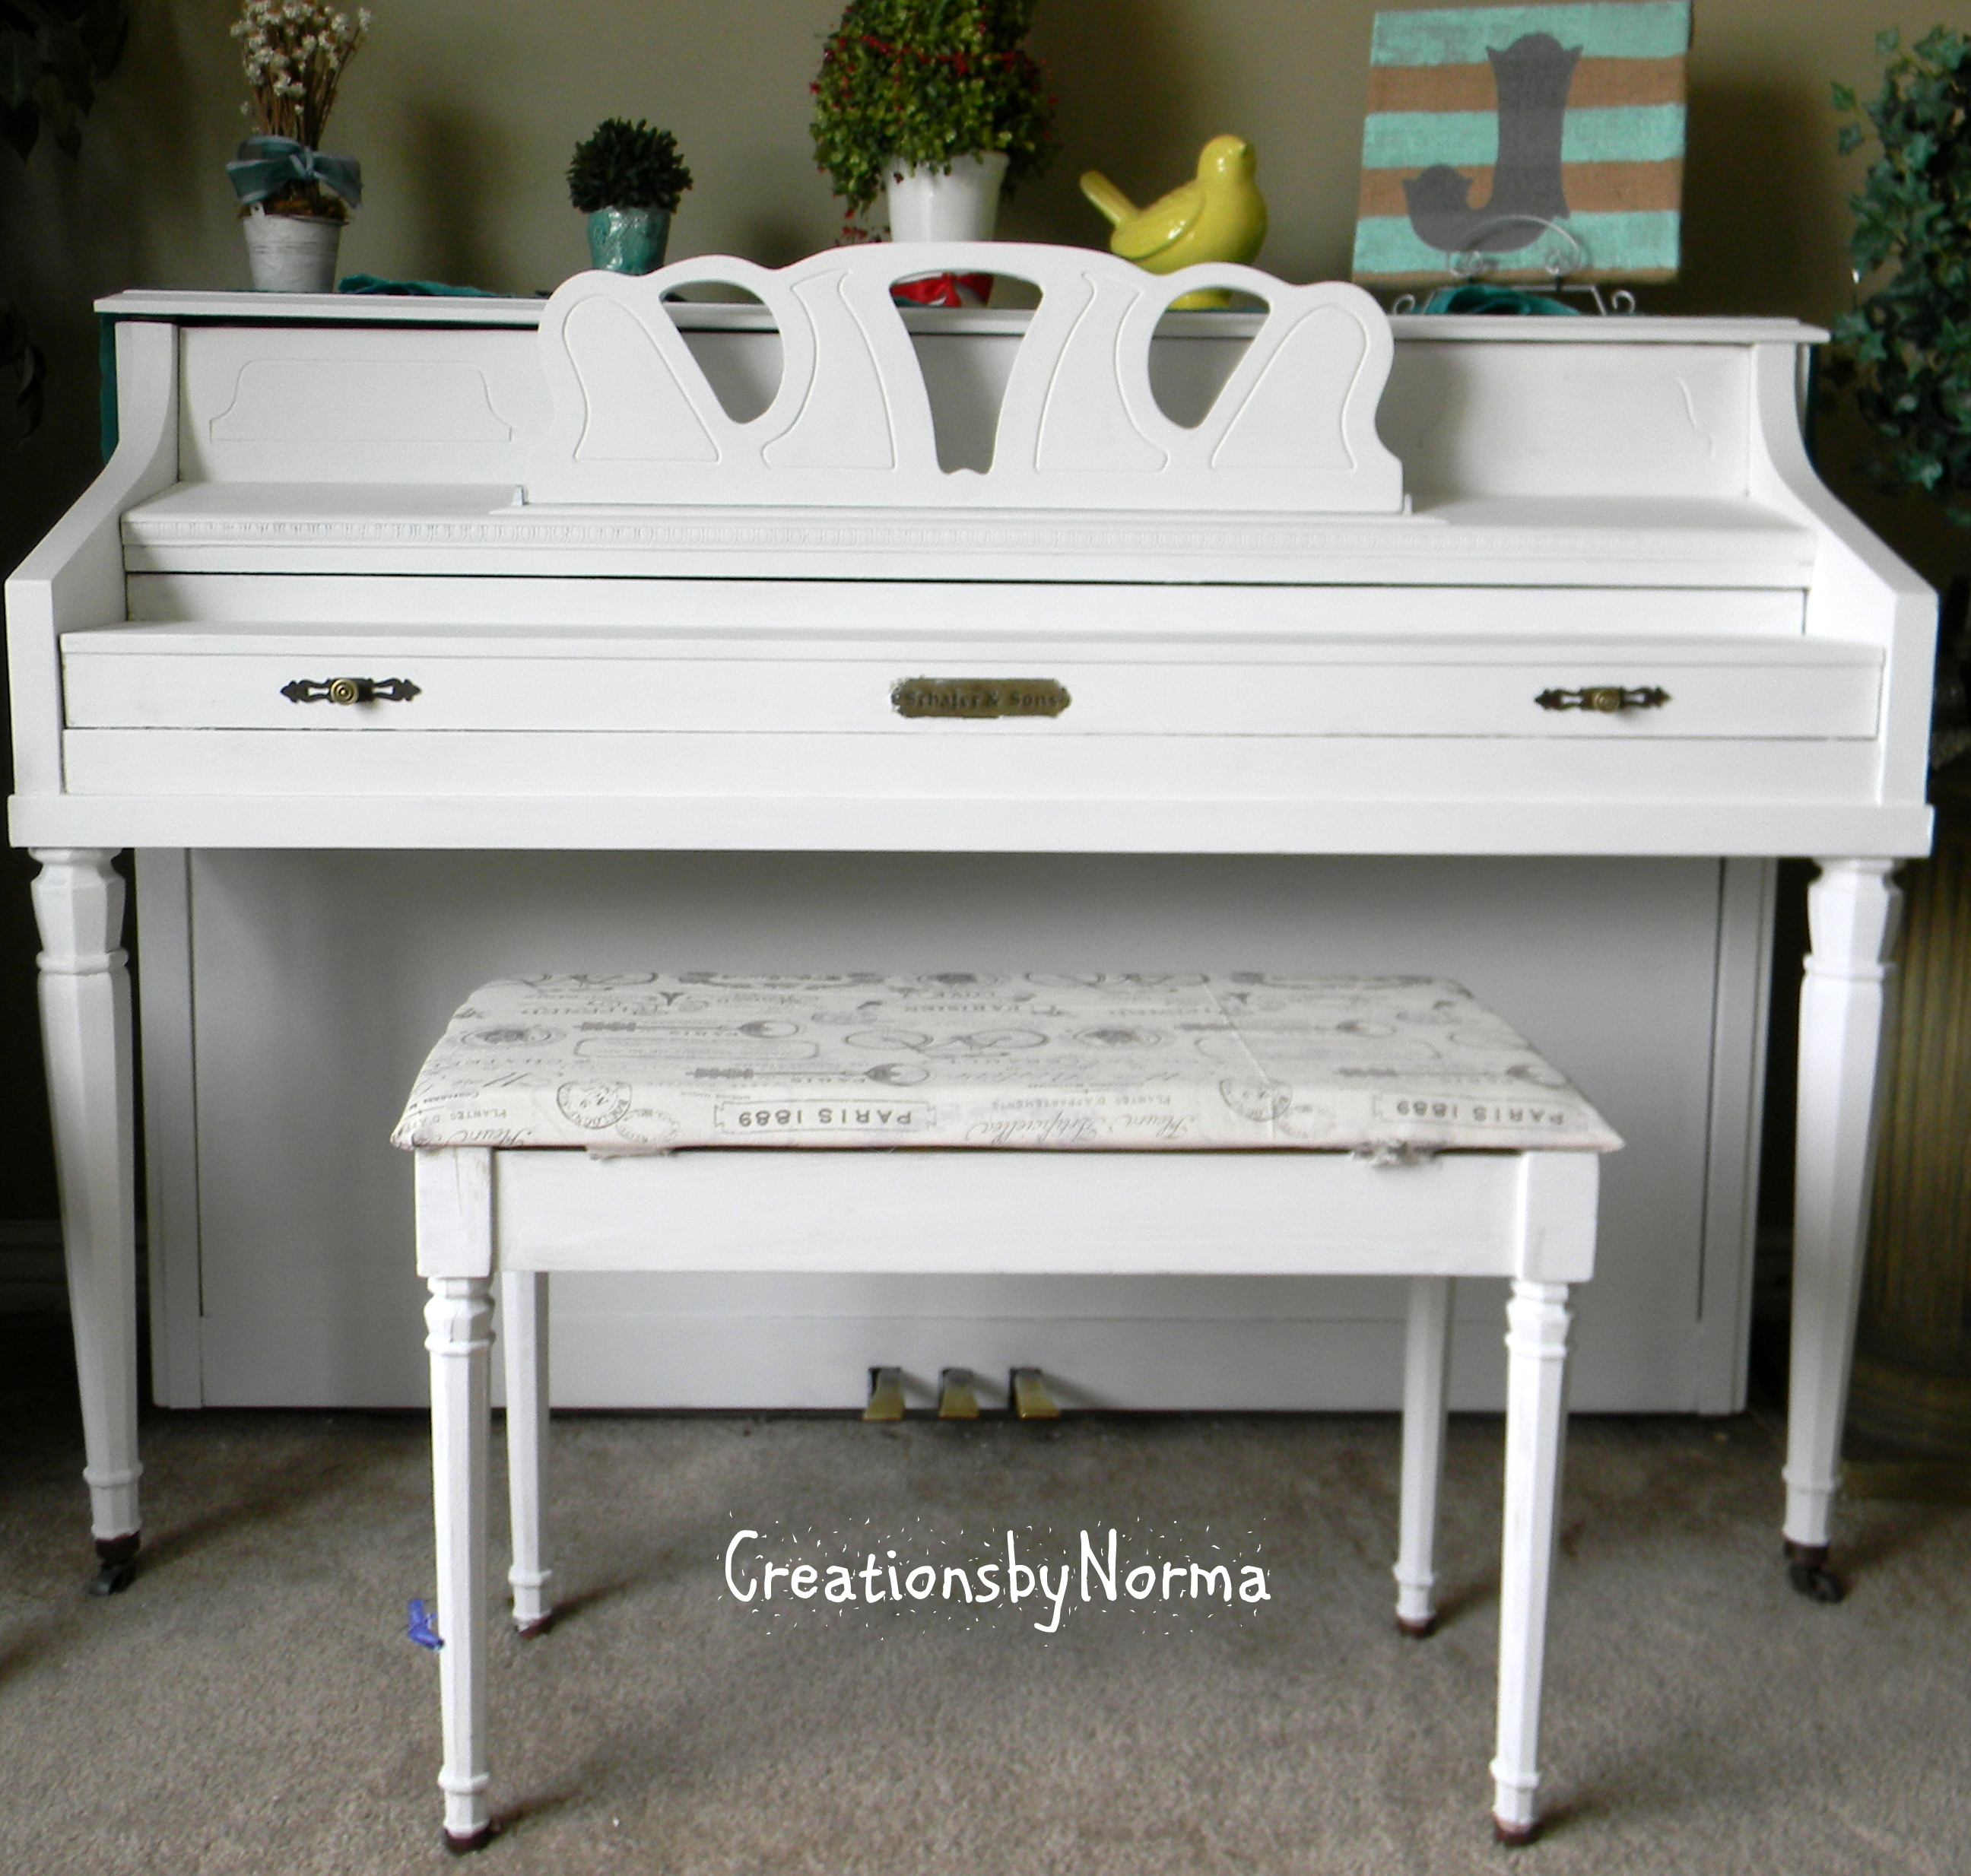 Annie Sloan Chalk Paint Creations By Norma